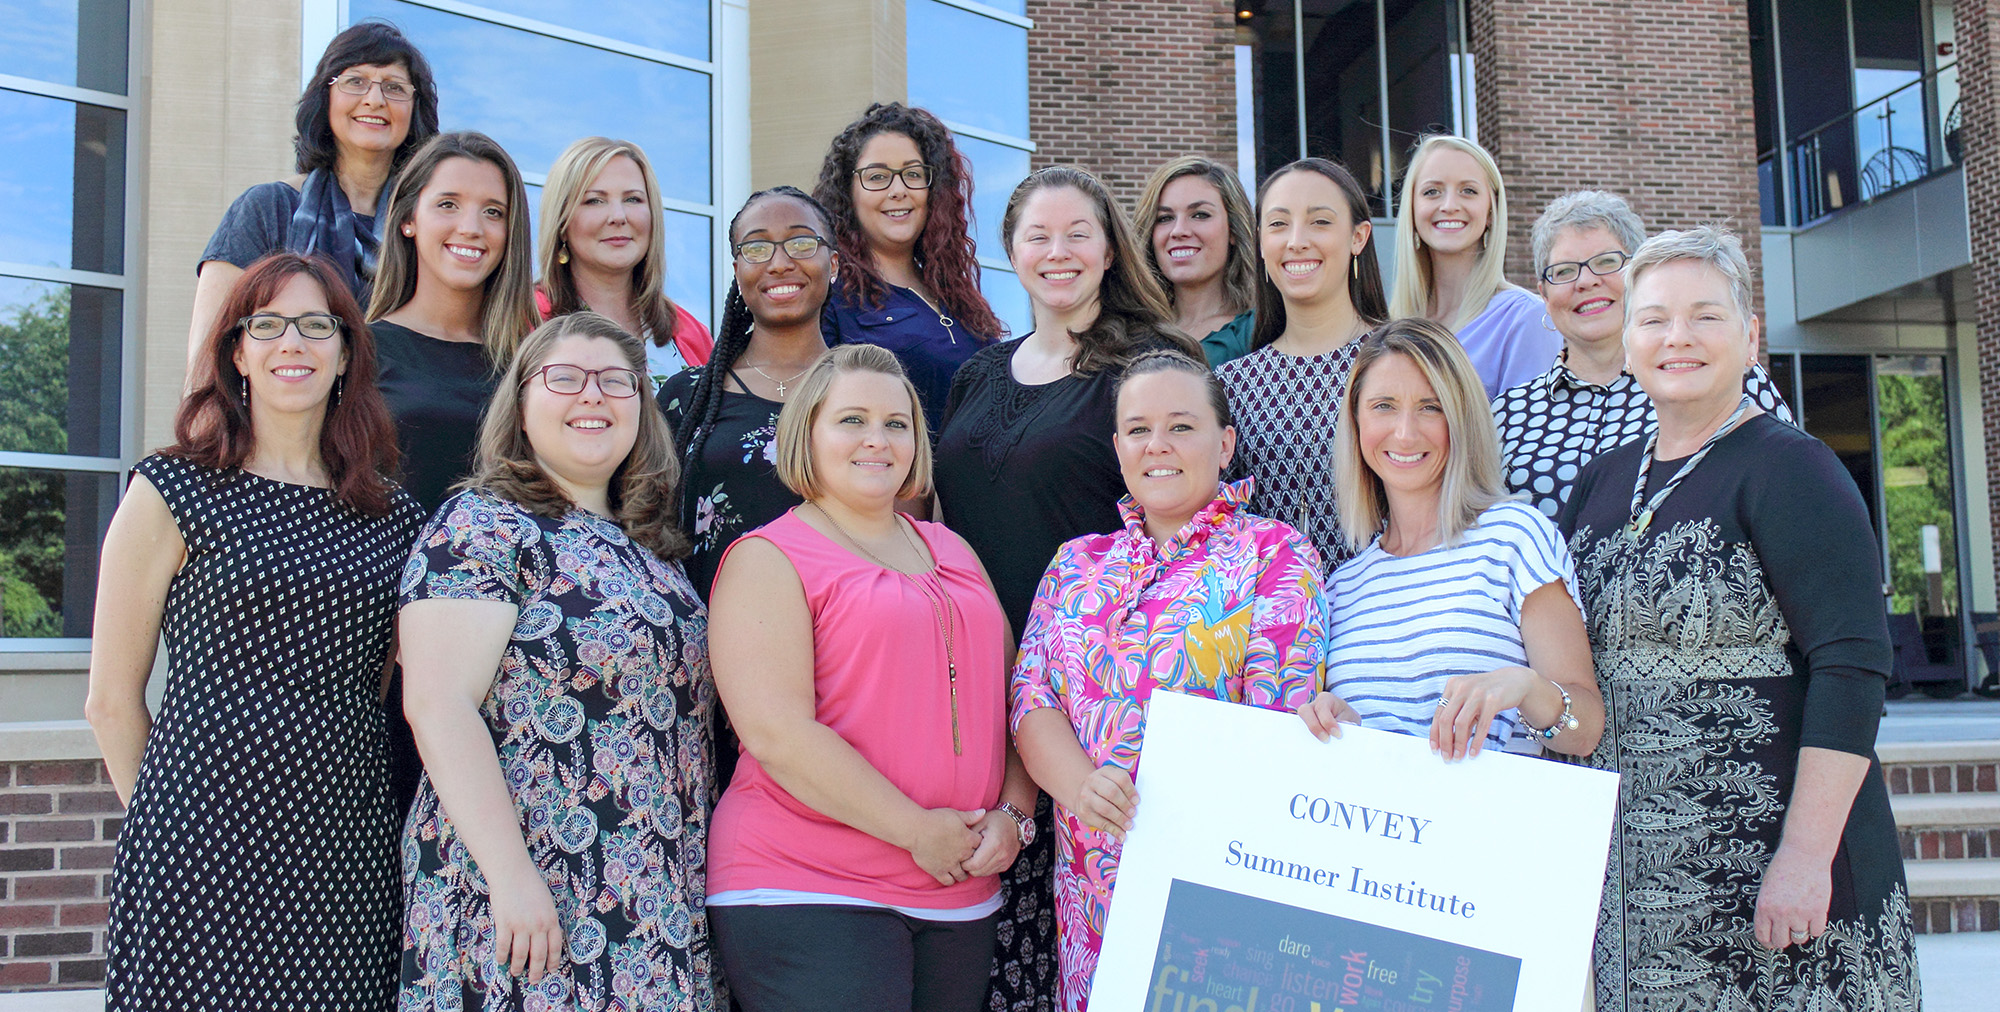 The inaugural class of 12 CONVEY scholars and the leadership team during the program's summer institute at the ECU Health Sciences Student Center.